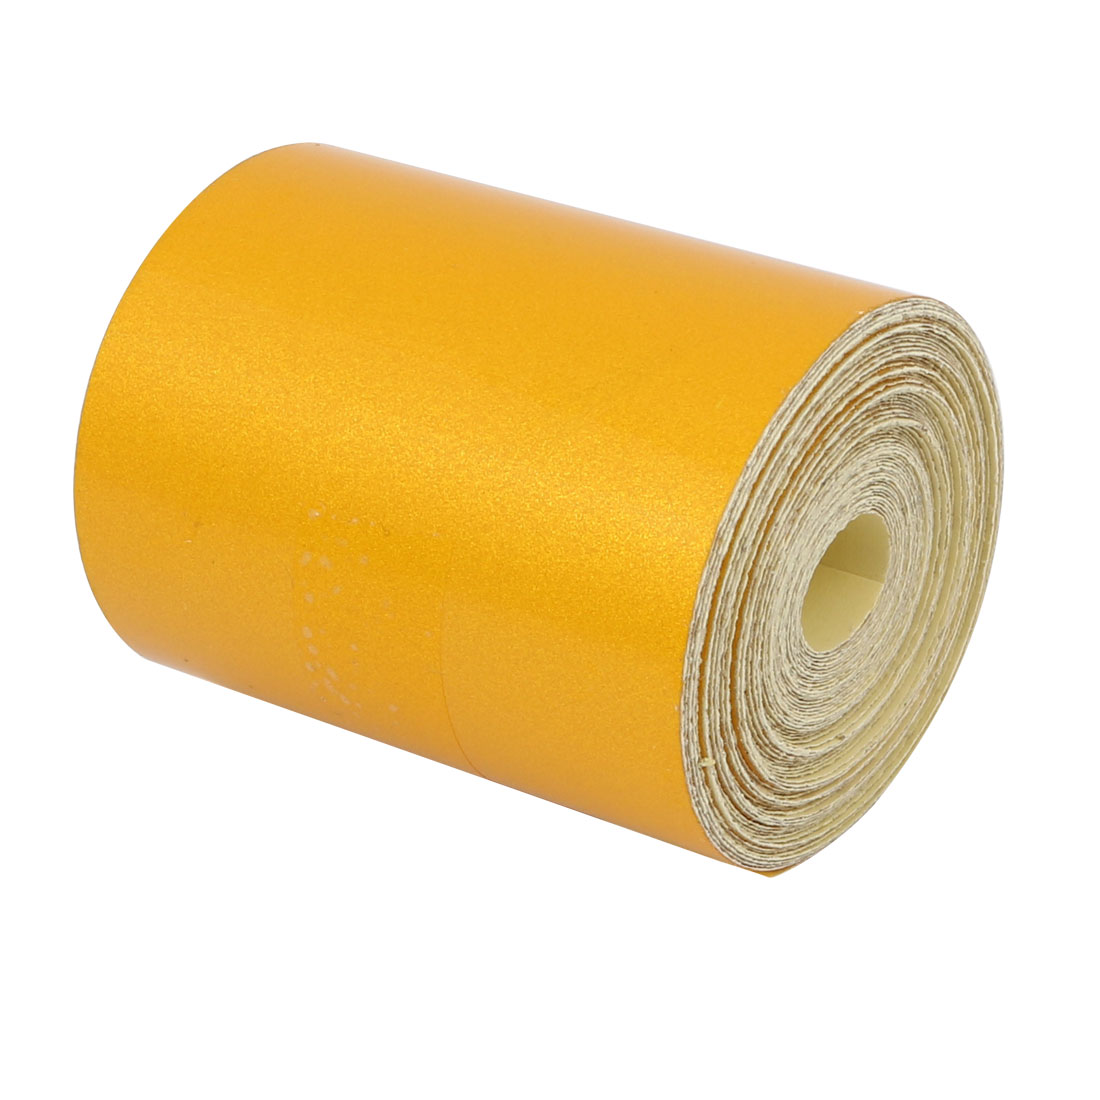 5cm Wide 3 Meters Long Single Sided Adhesive Reflective Warning Tape Yellow